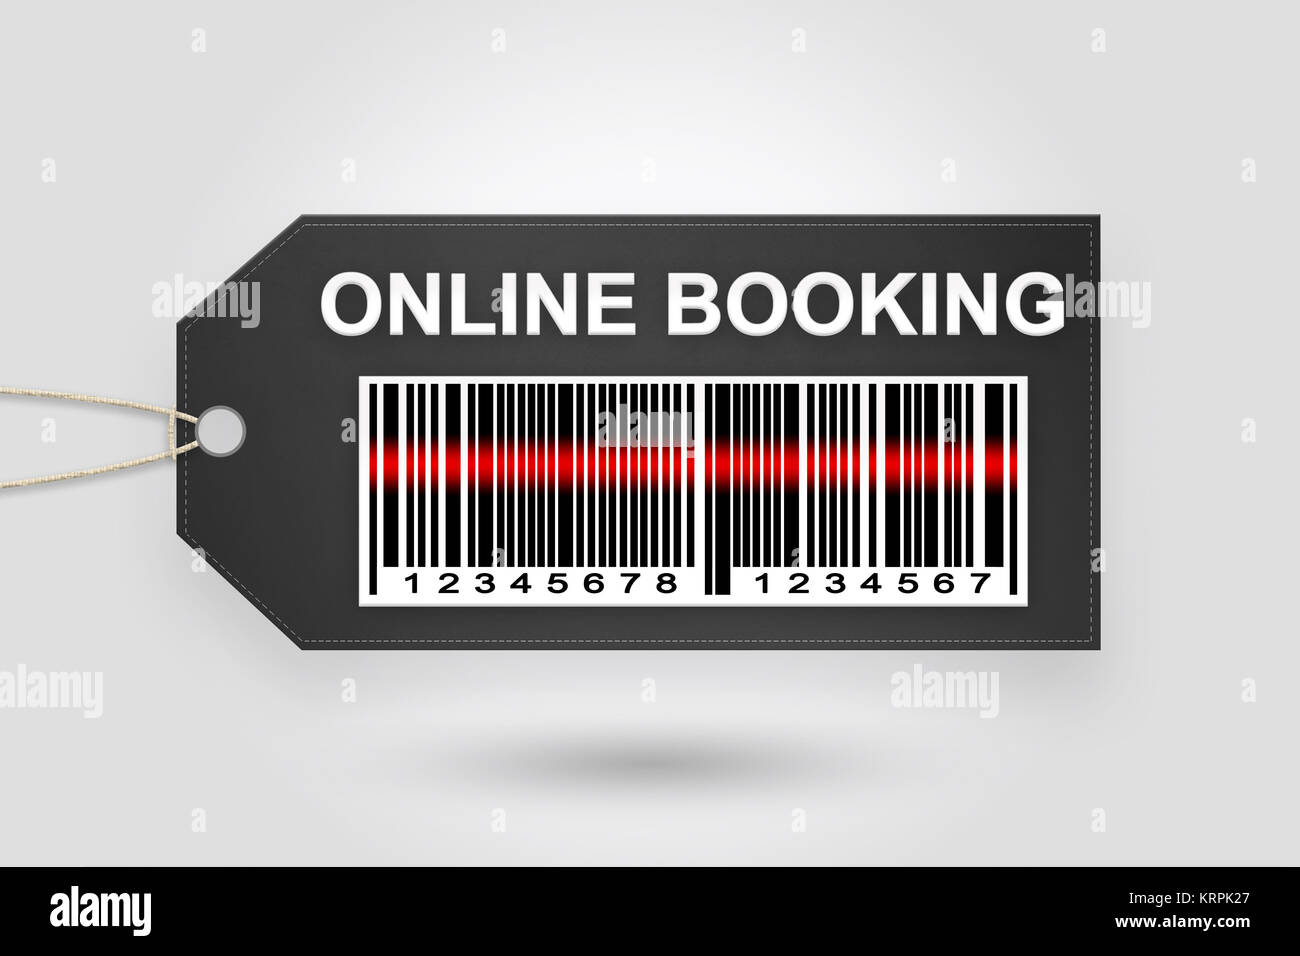 online booking price tag - Stock Image